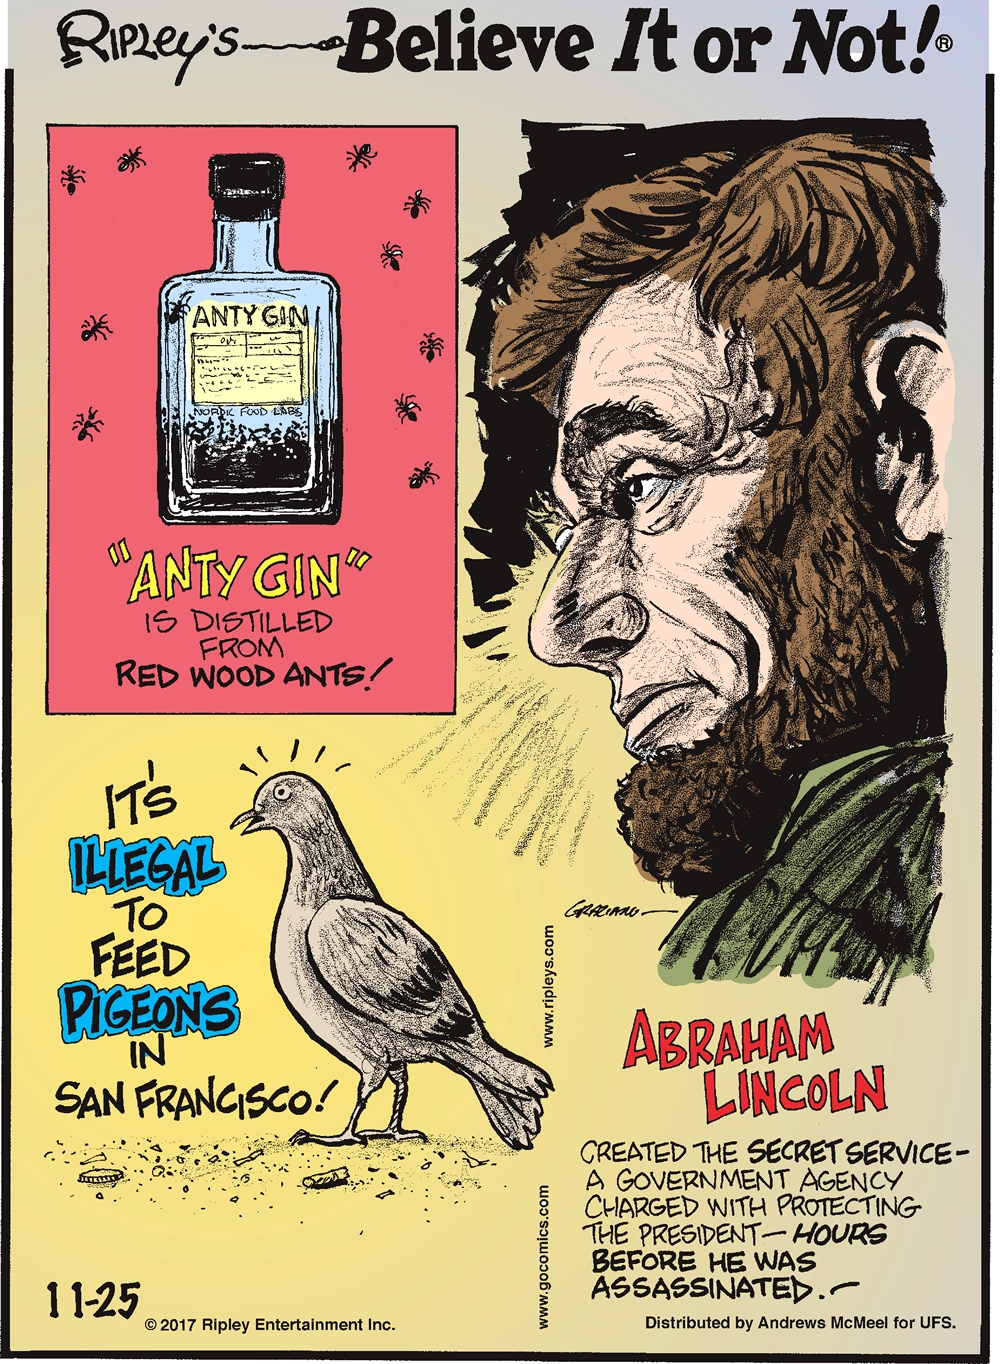 """Anty Gin"" is distilled from red wood ants!----------------------It's illegal to feed pigeons in San Francisco!-------------------- Abraham Lincoln created the Secret Service - a government agency charged with protecting the President - hours before he was assassinated!"